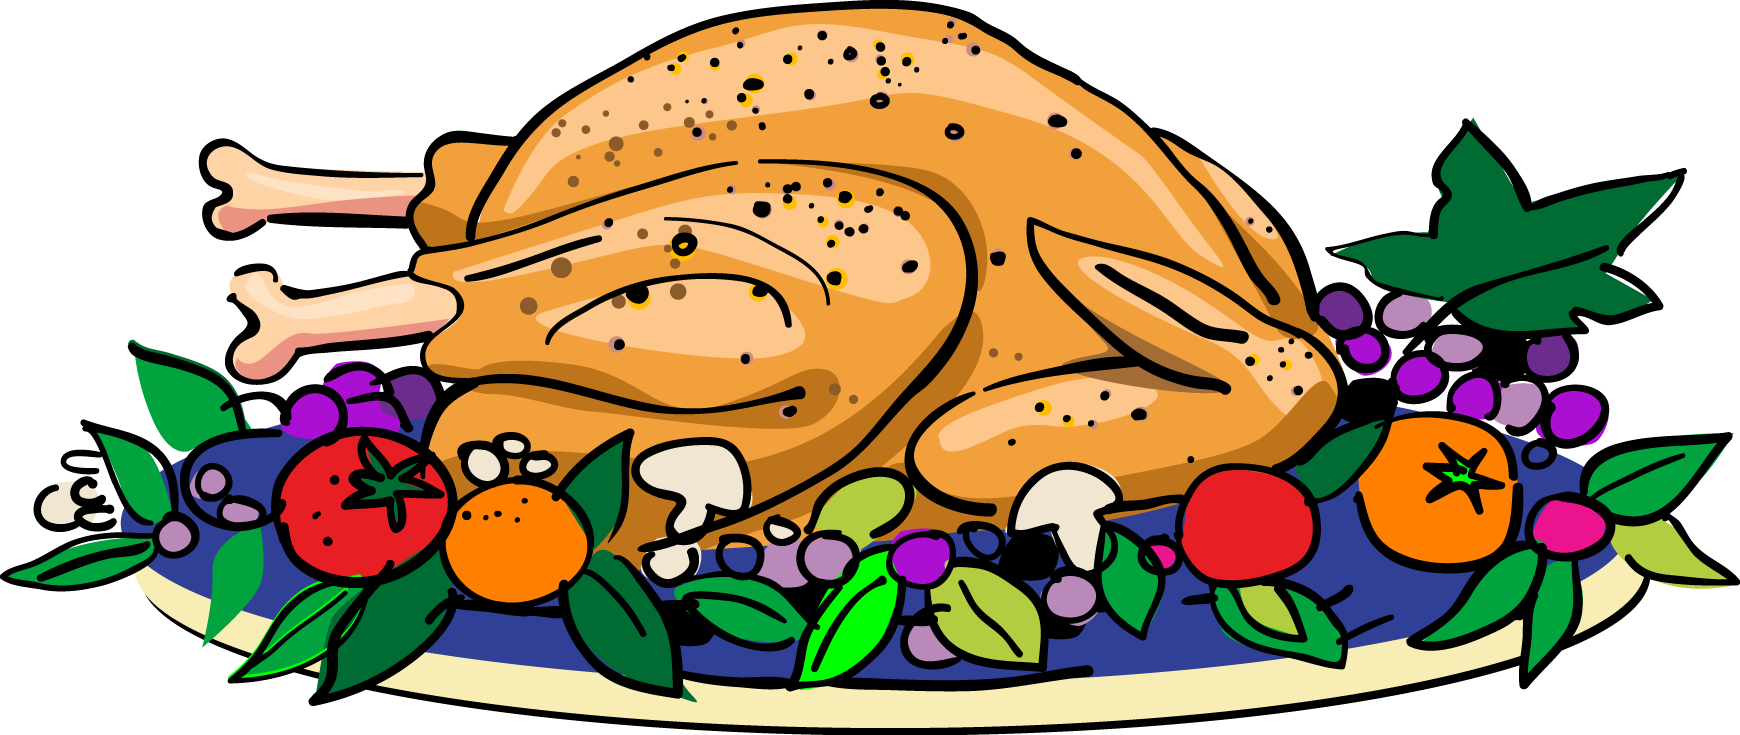 Roast chicken clip art. Meat clipart non veg food